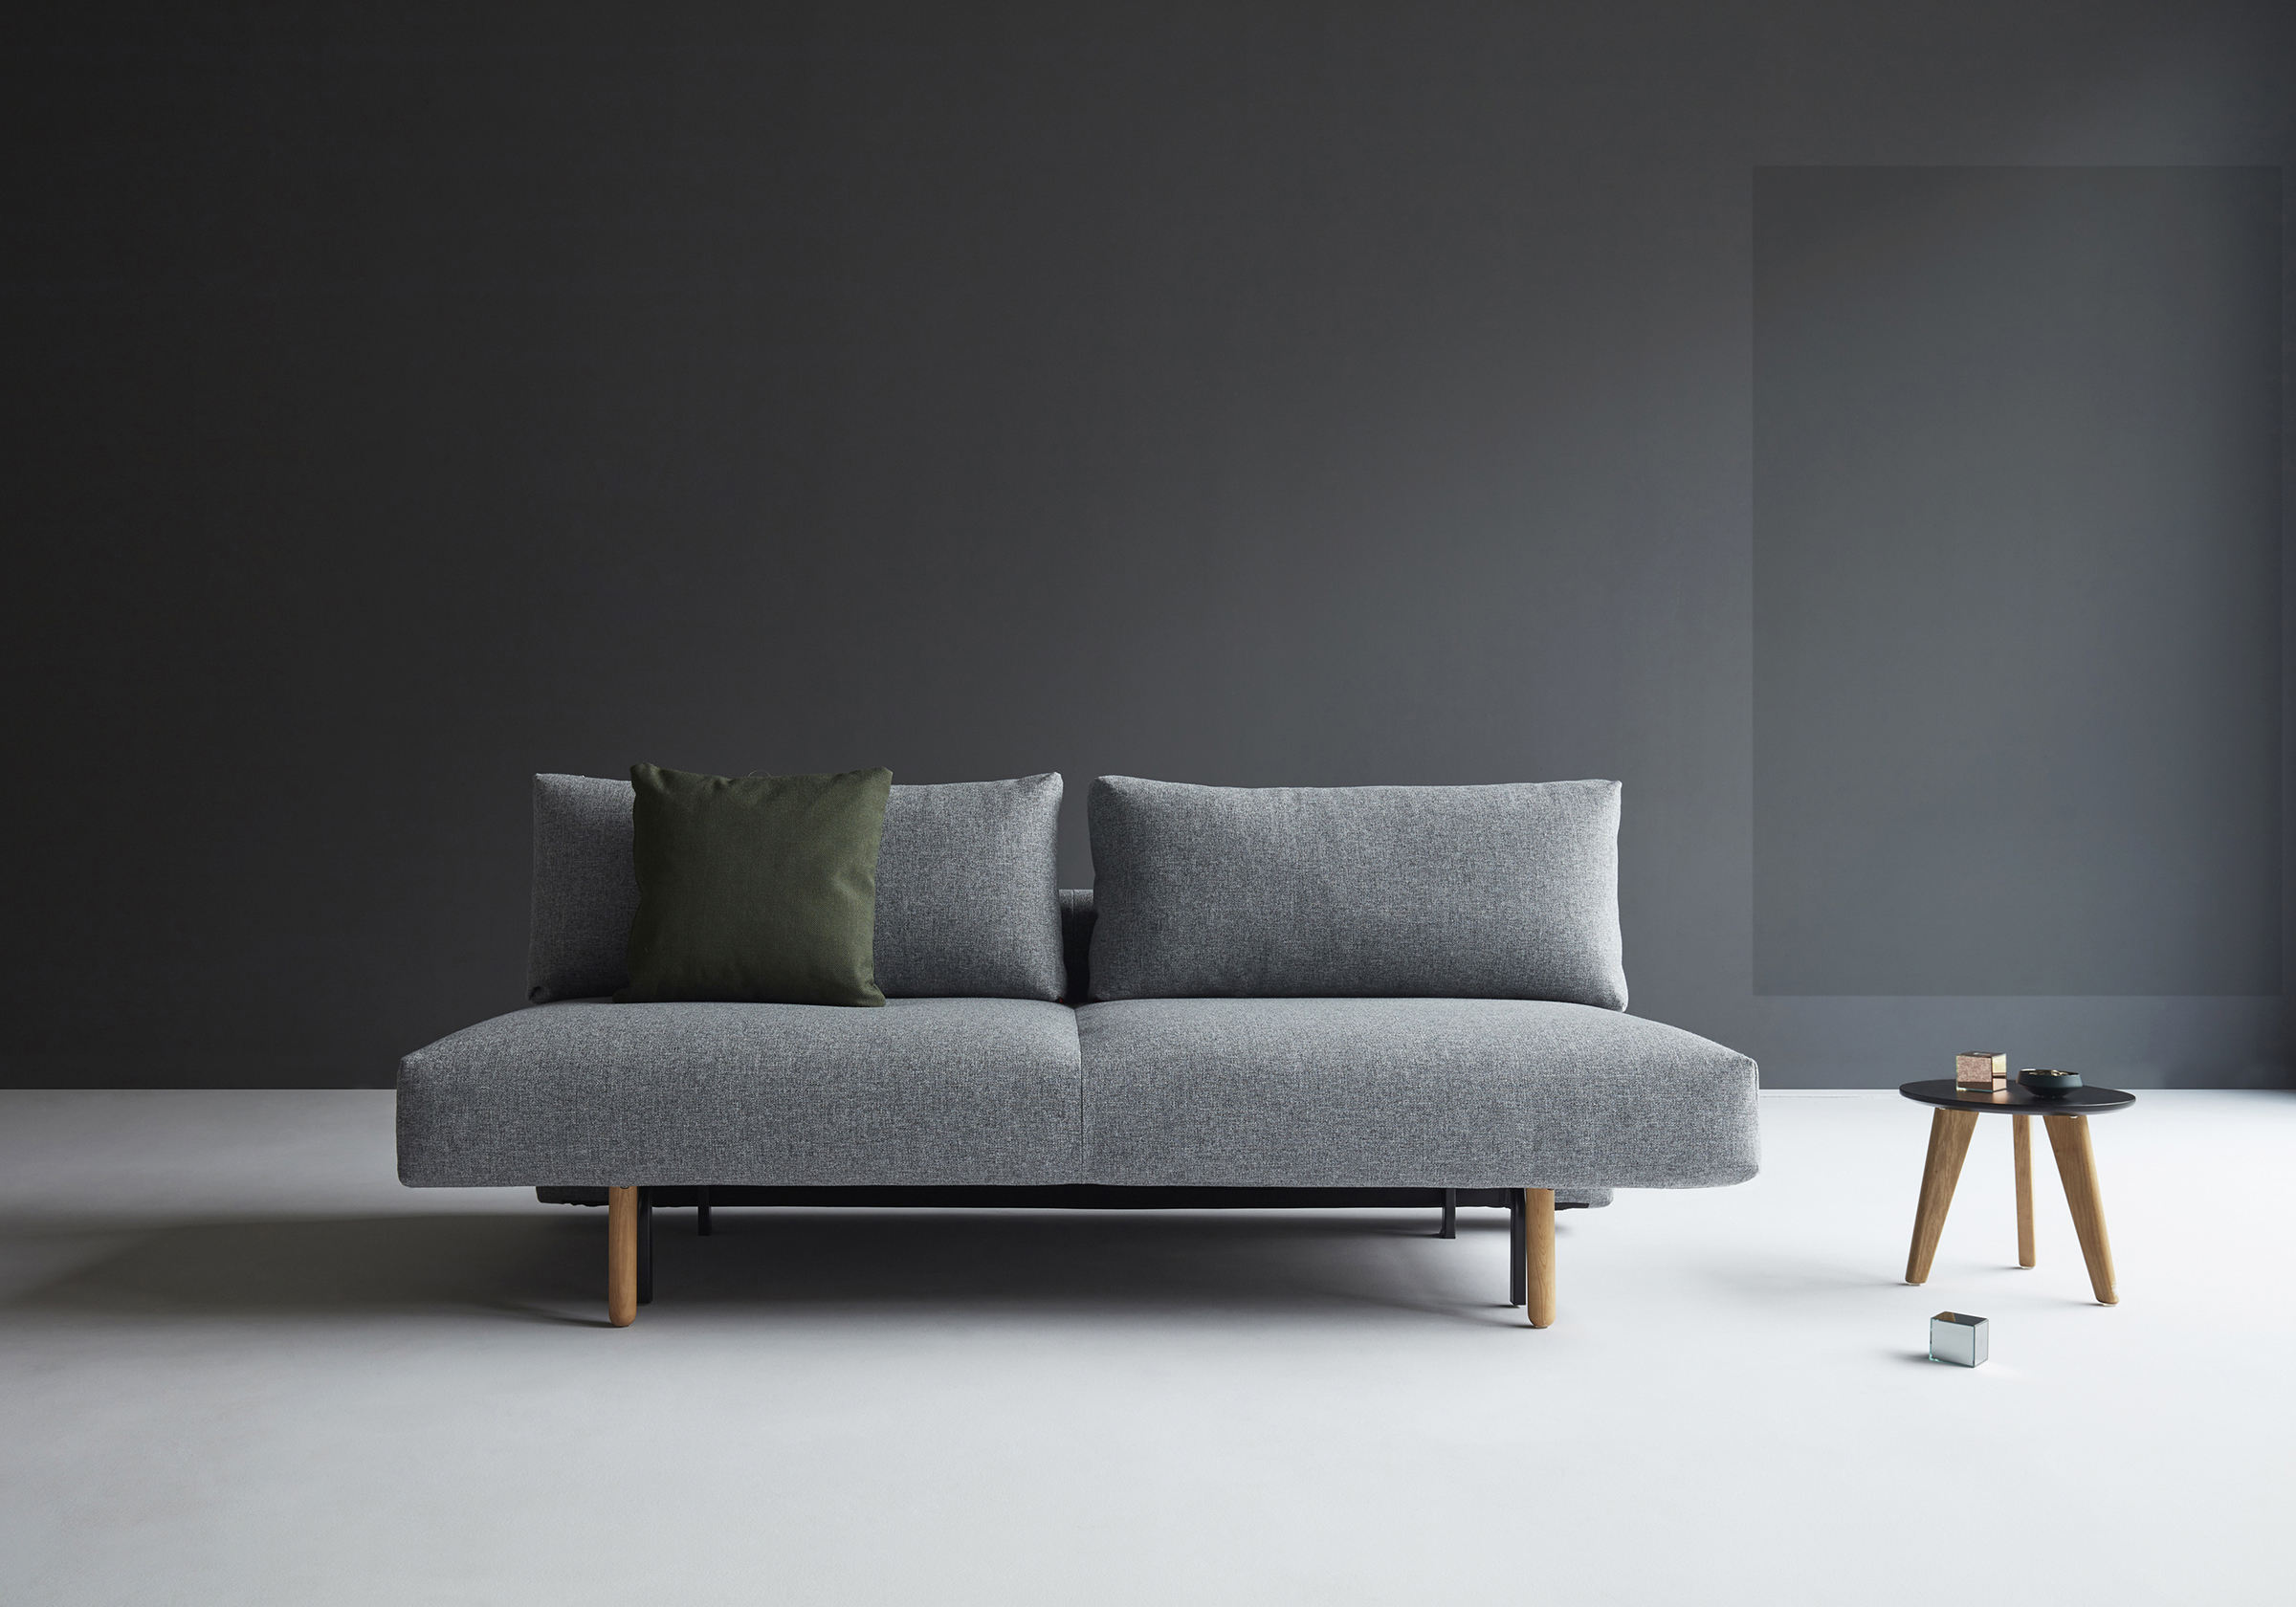 Swell 12 Of The Best Minimalist Sofa Beds For Small Spaces Lamtechconsult Wood Chair Design Ideas Lamtechconsultcom